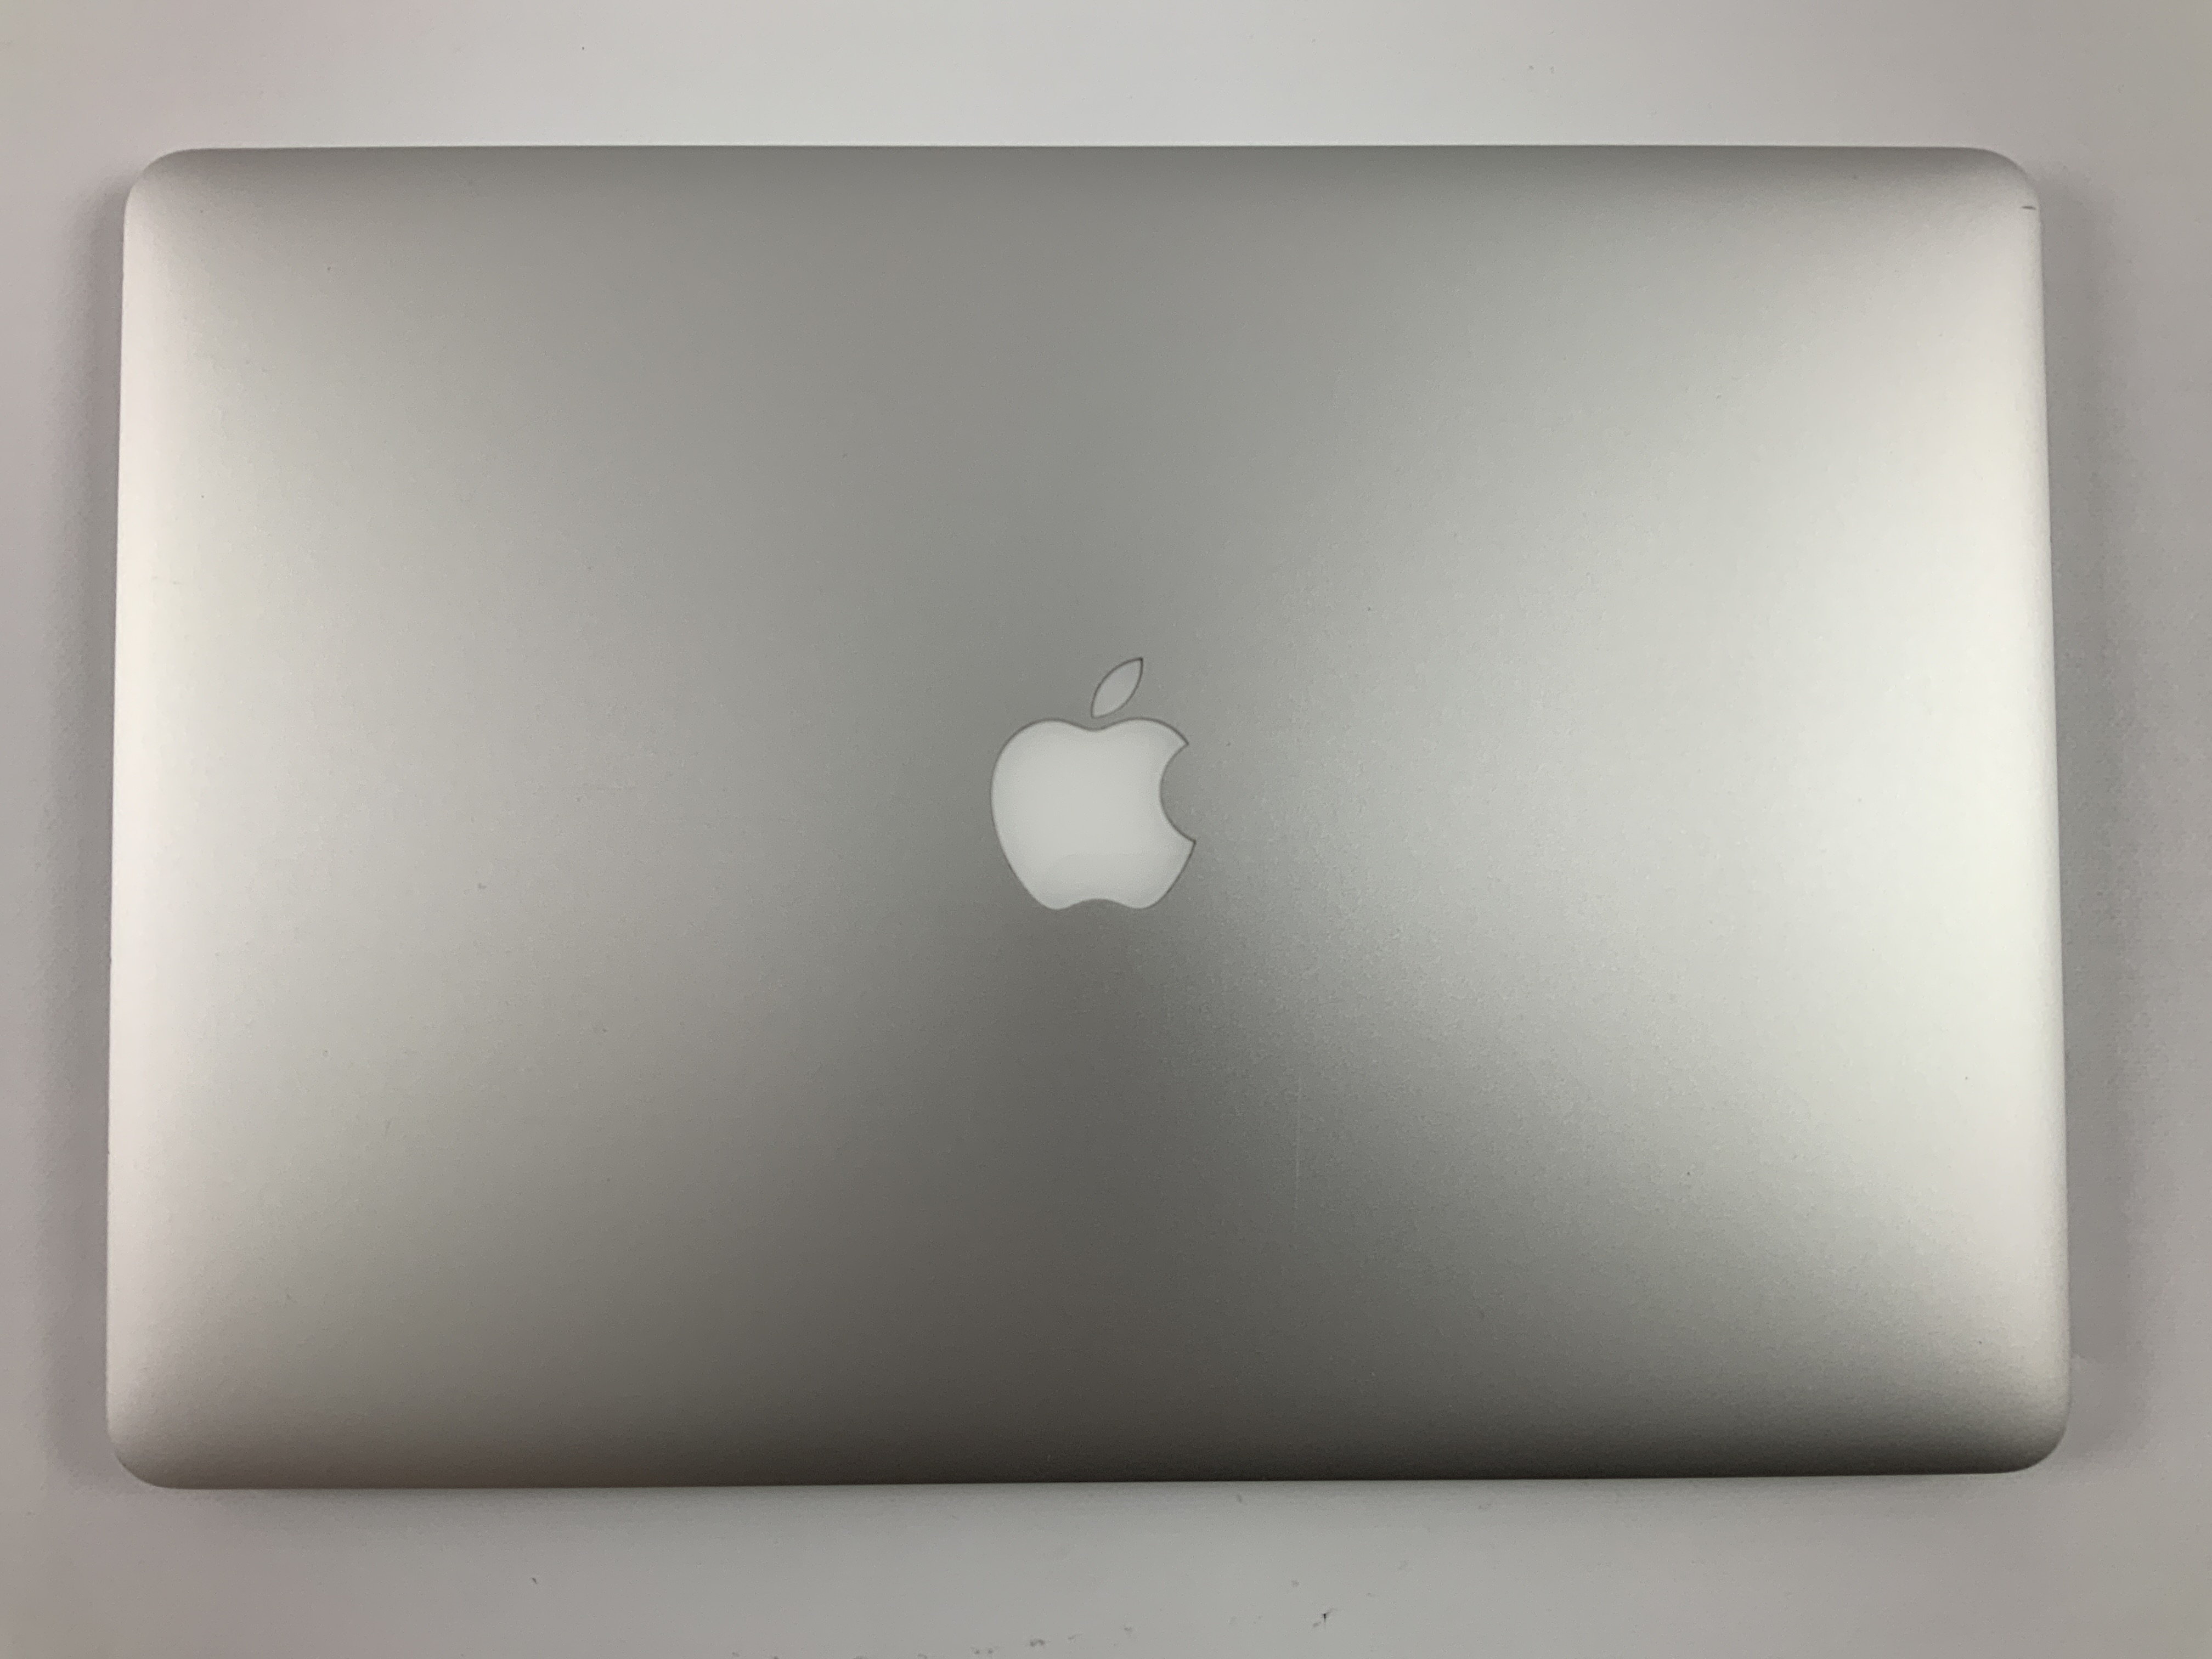 "MacBook Pro Retina 15"" Mid 2015 (Intel Quad-Core i7 2.2 GHz 16 GB RAM 1 TB SSD), Intel Quad-Core i7 2.2 GHz, 16 GB RAM, 1 TB SSD, Bild 2"